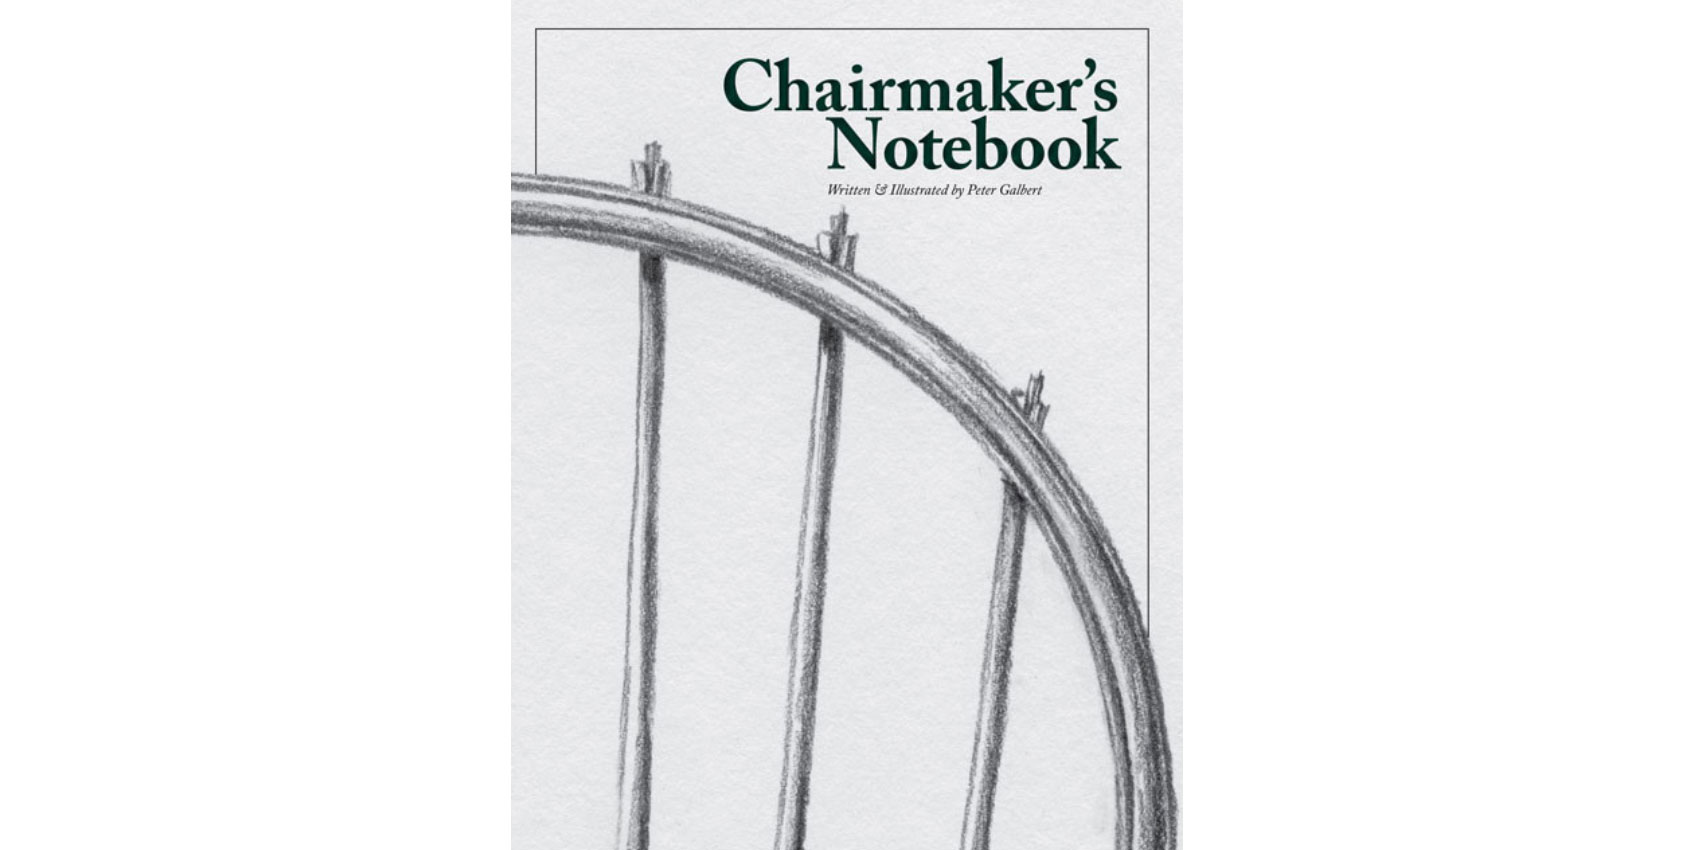 Chairmaker's Notebook